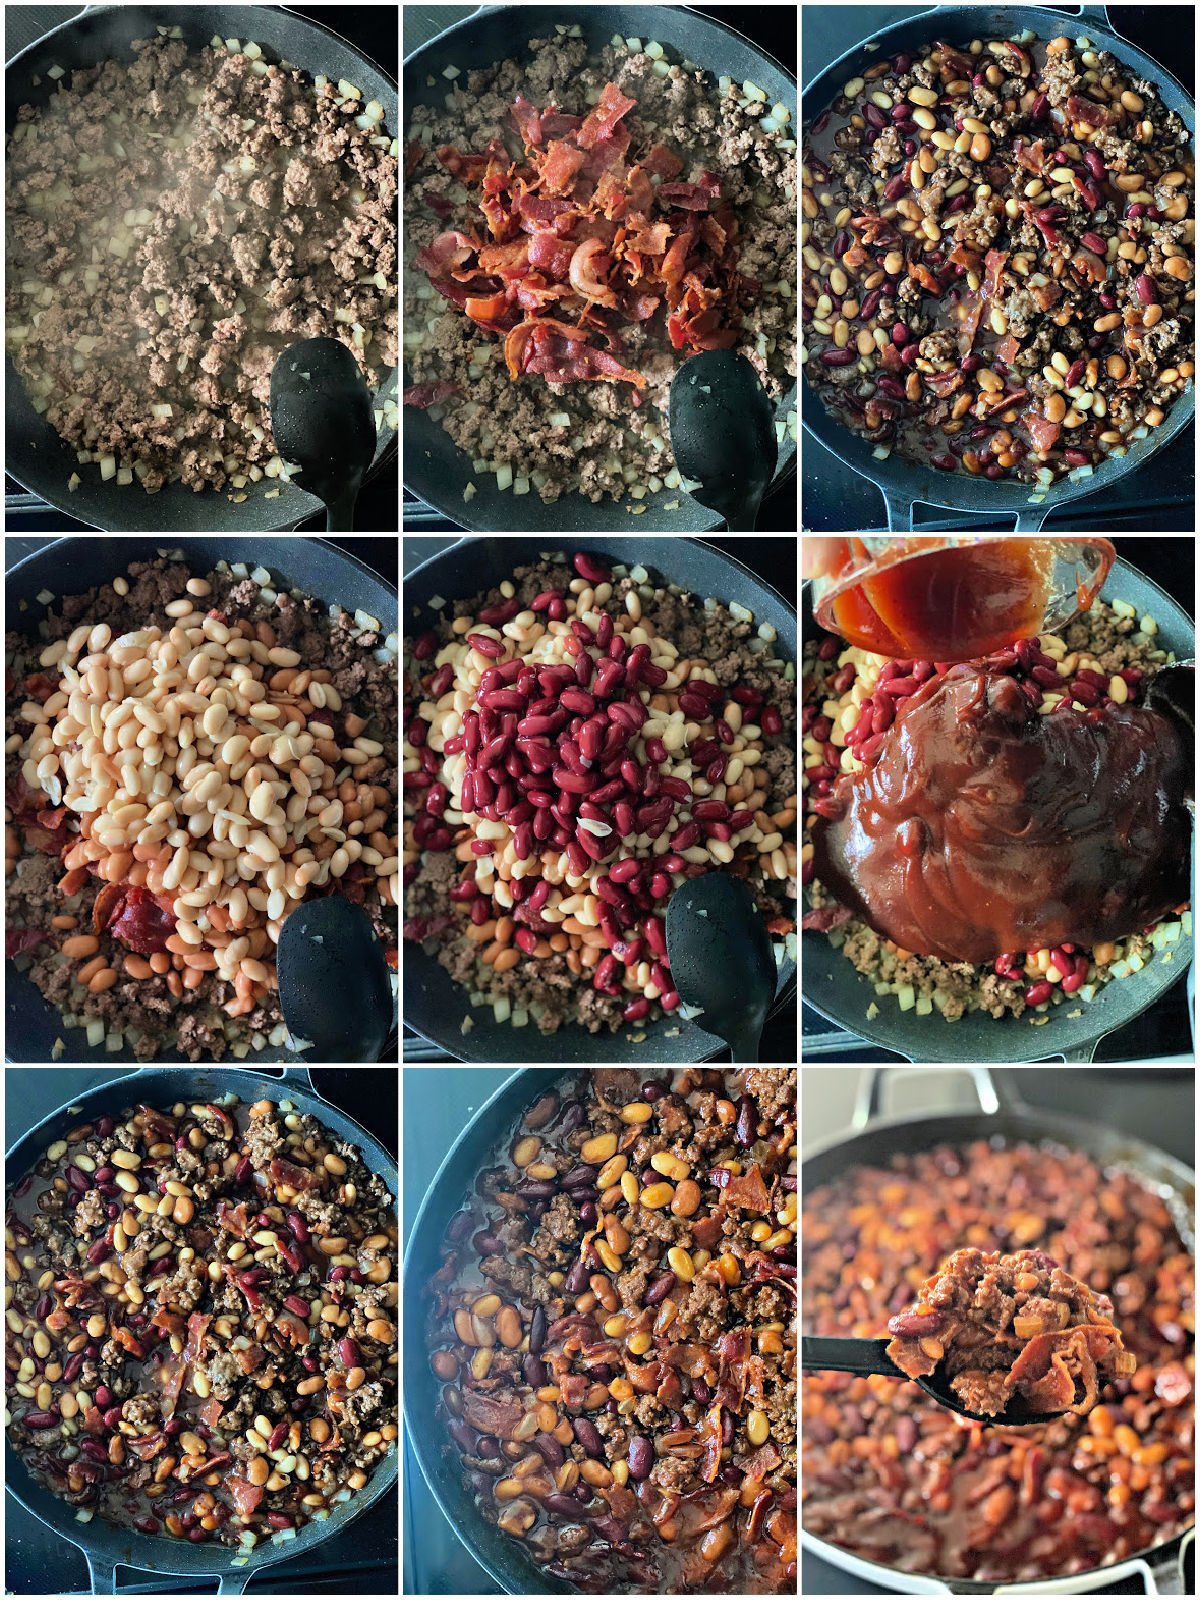 process of making bbq baked beans